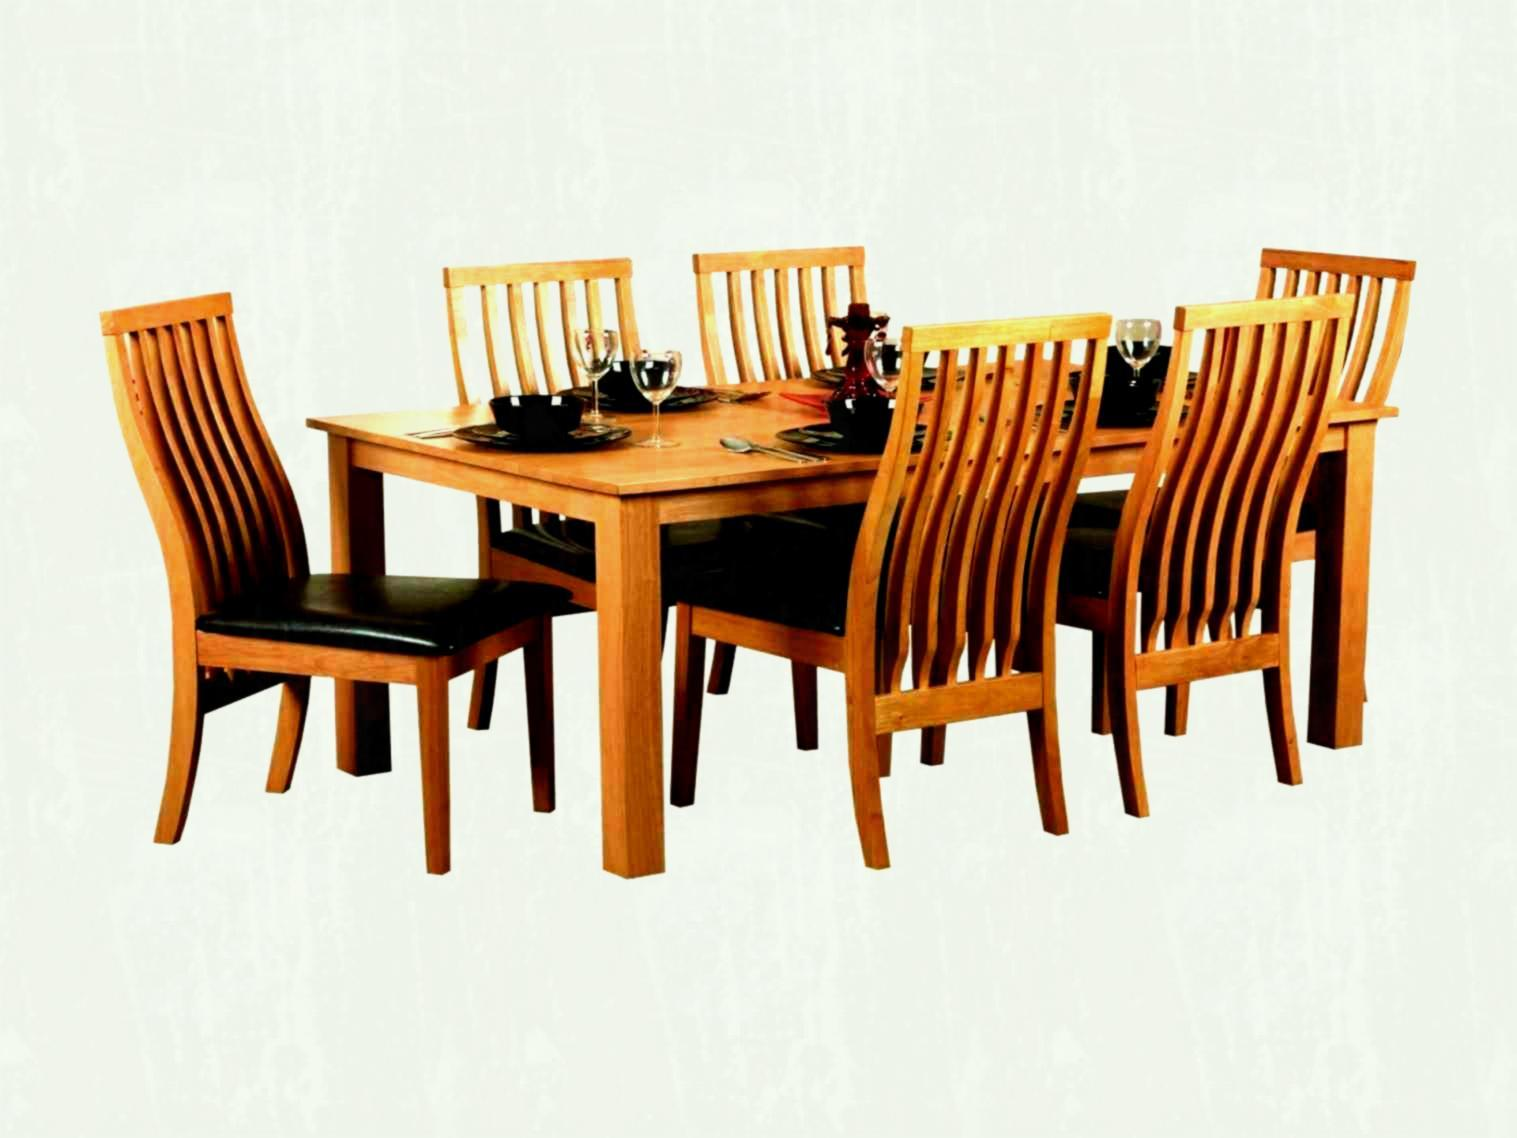 Table clipart living room table. Astonishing dinner collection dining